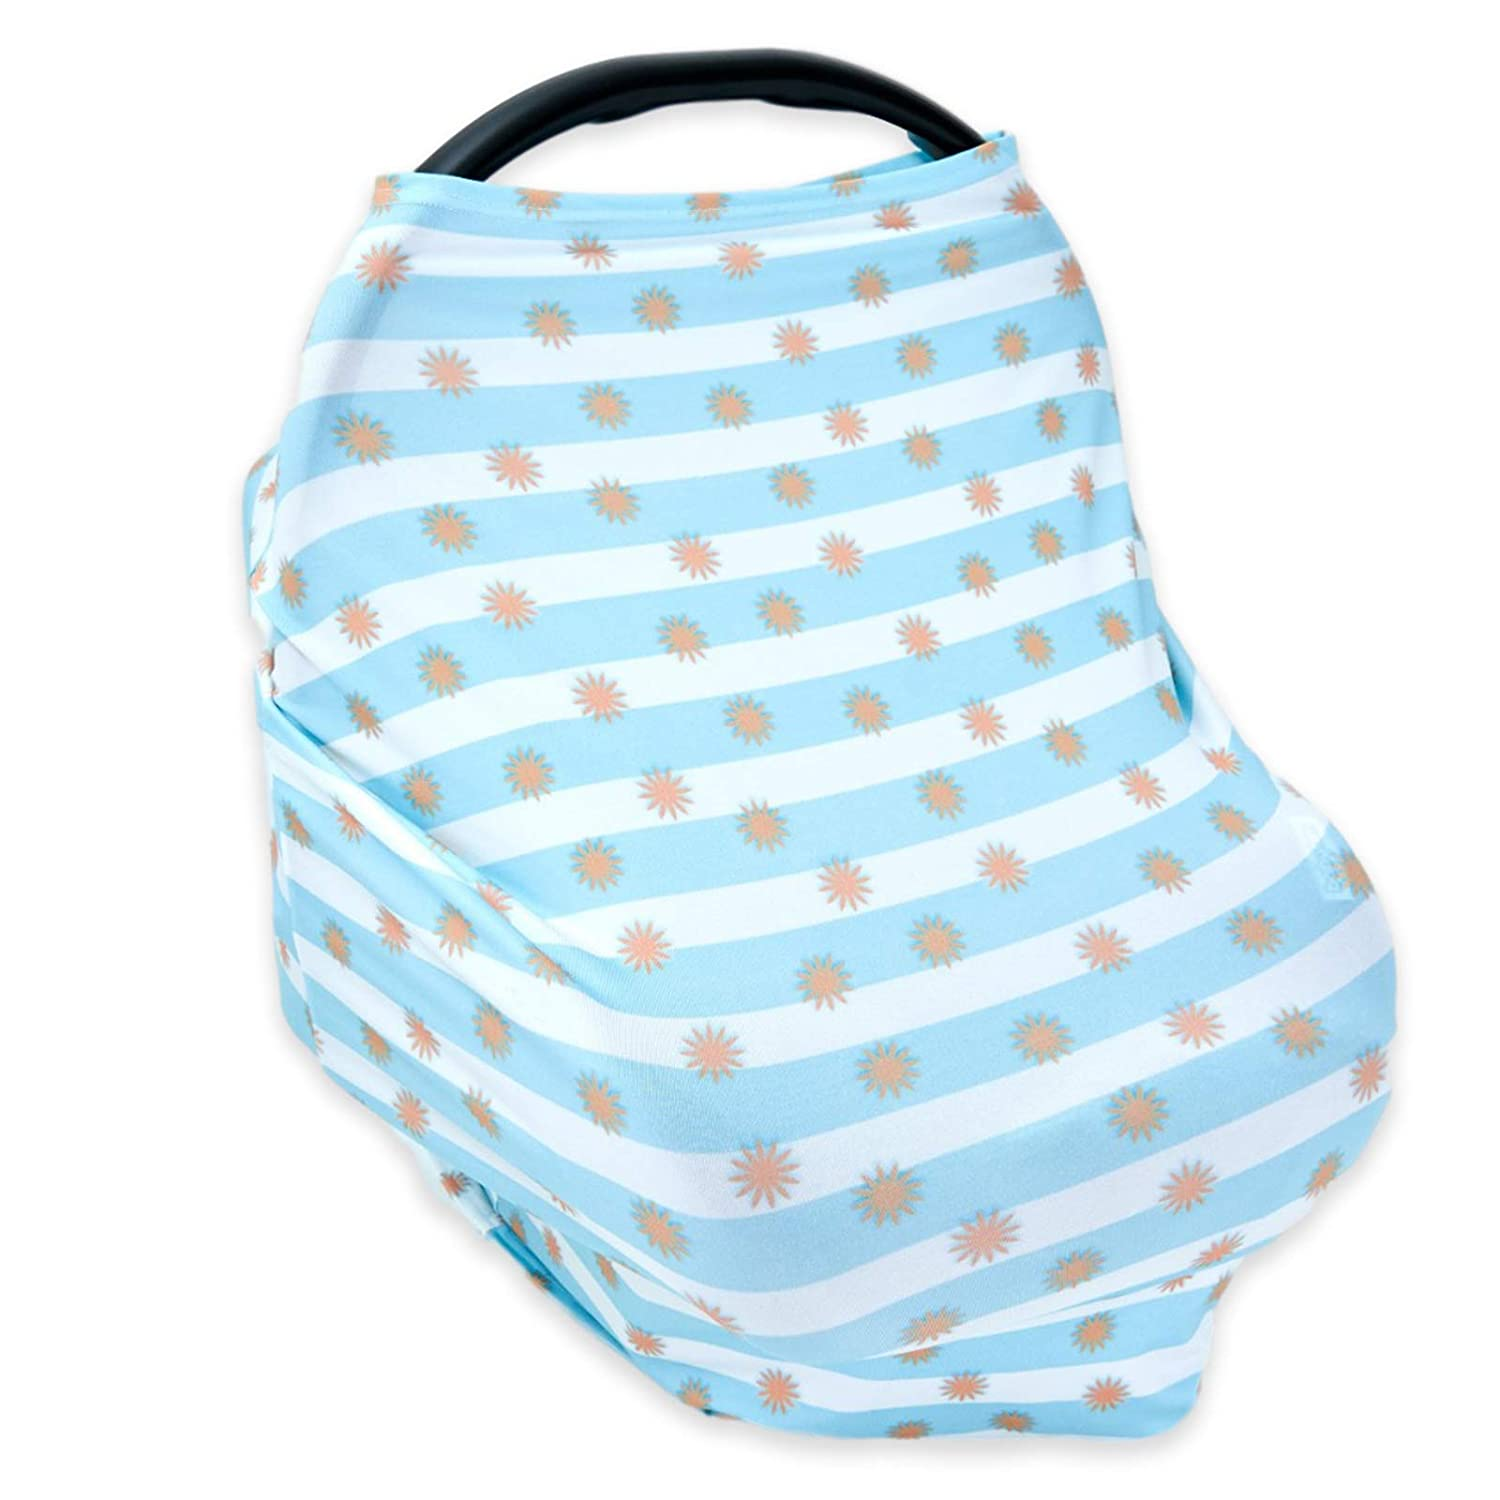 PPOGOO Nursing Cover for Breastfeeding Super Soft Cotton Multi Use for Baby Car Seat Covers Canopy Shopping Cart Cover Scarf Light Blanket Stroller Cover Blue Flower